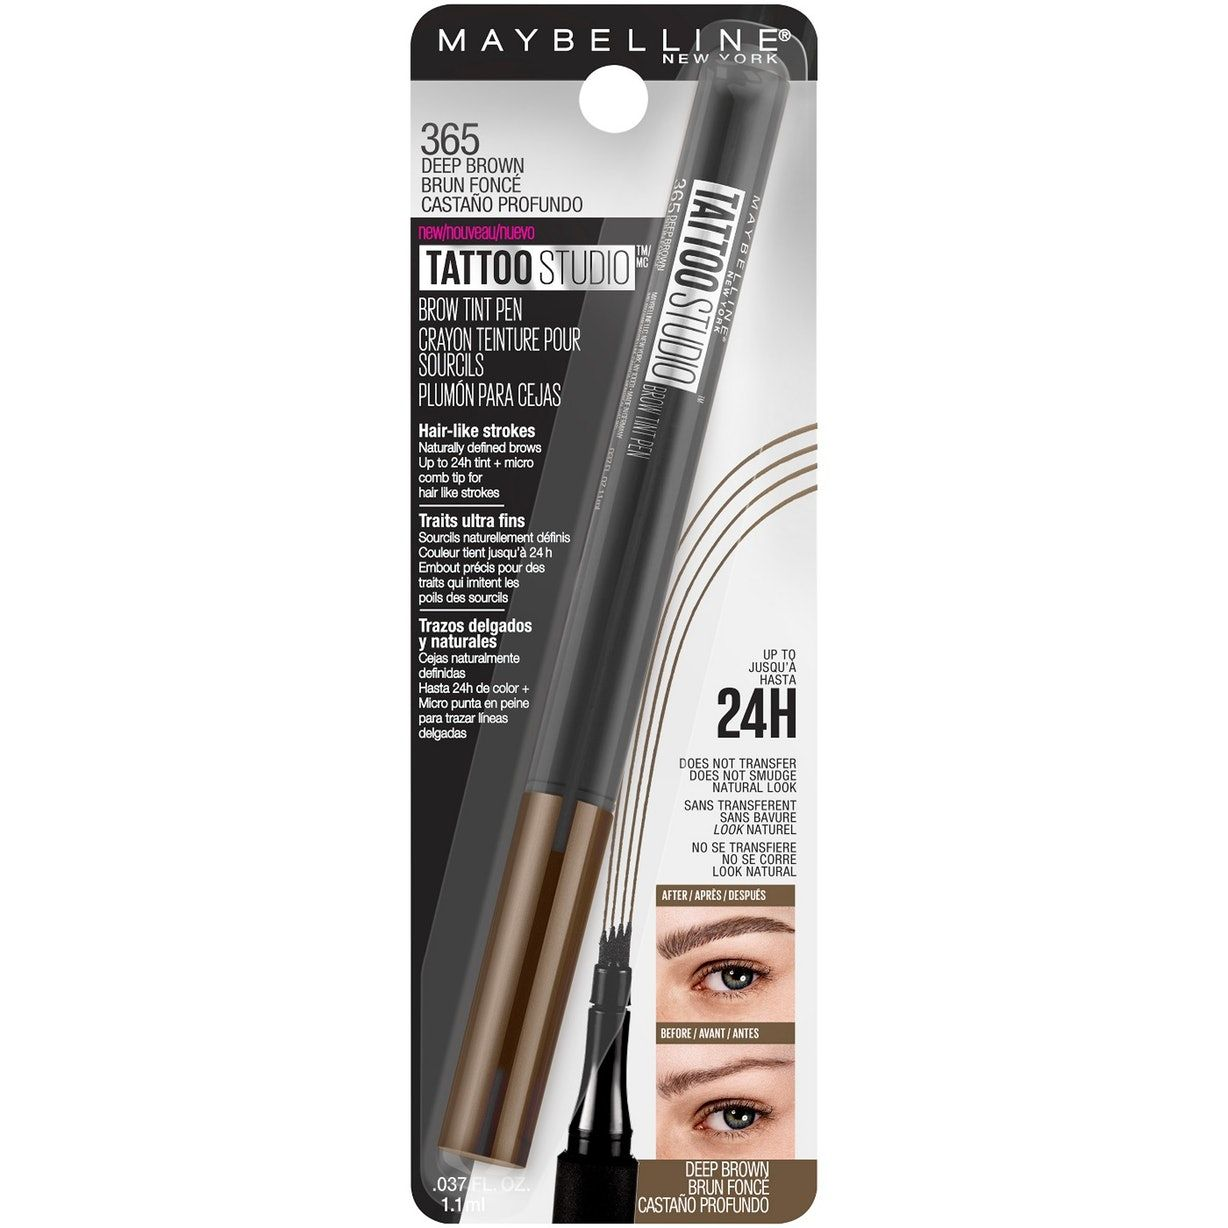 Maybelline TattooStudio Brow Pen (With images) Brow